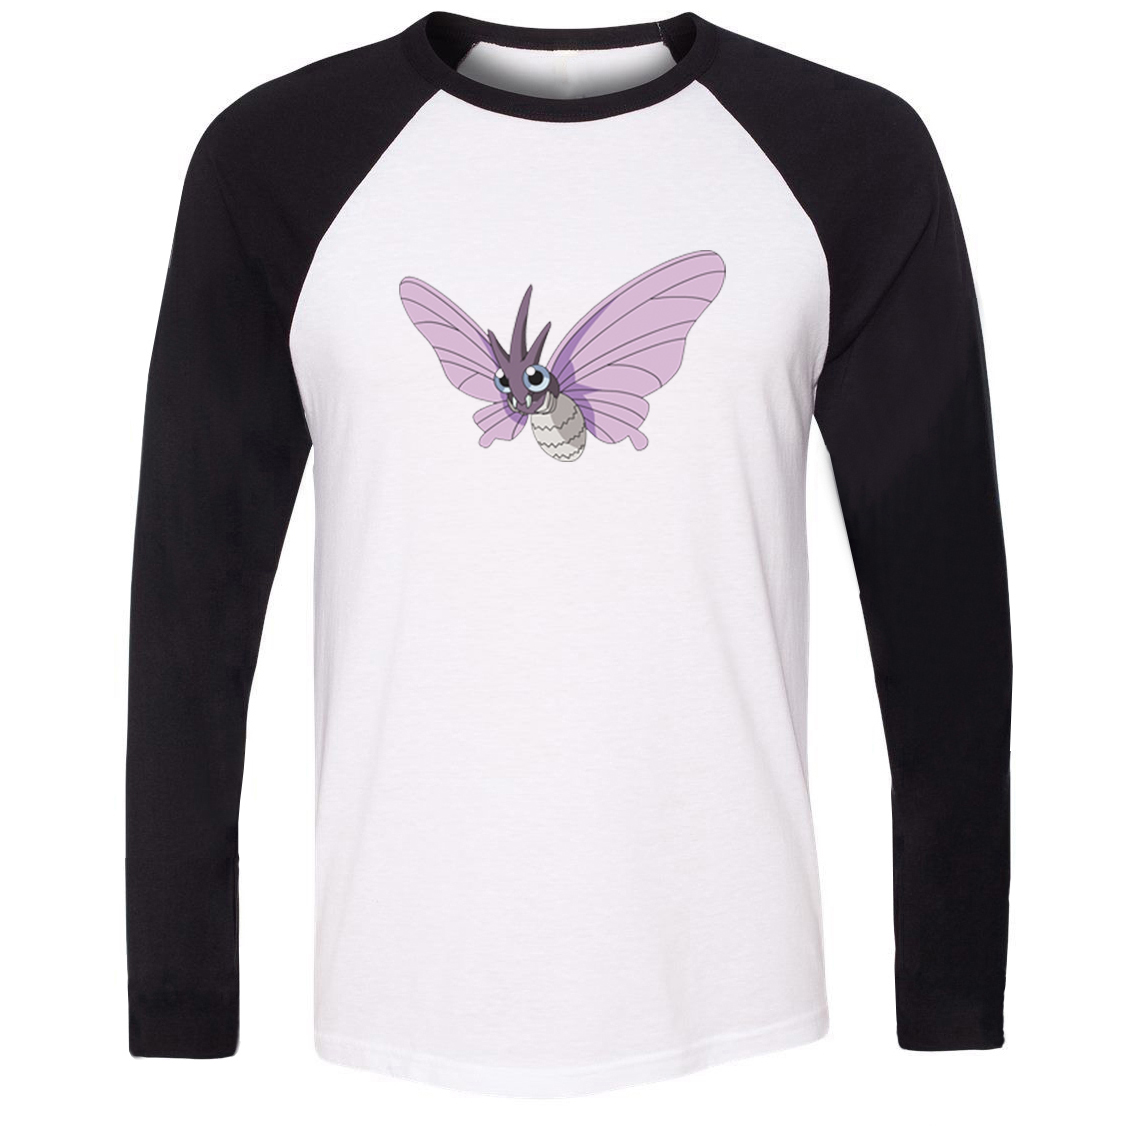 Unisex T-shirt Pokemon National Pokedex 049 Poison Bug Type Venomoth Pattern Raglan Long Sleeve Men T shirt Boy Casual Tee Tops image